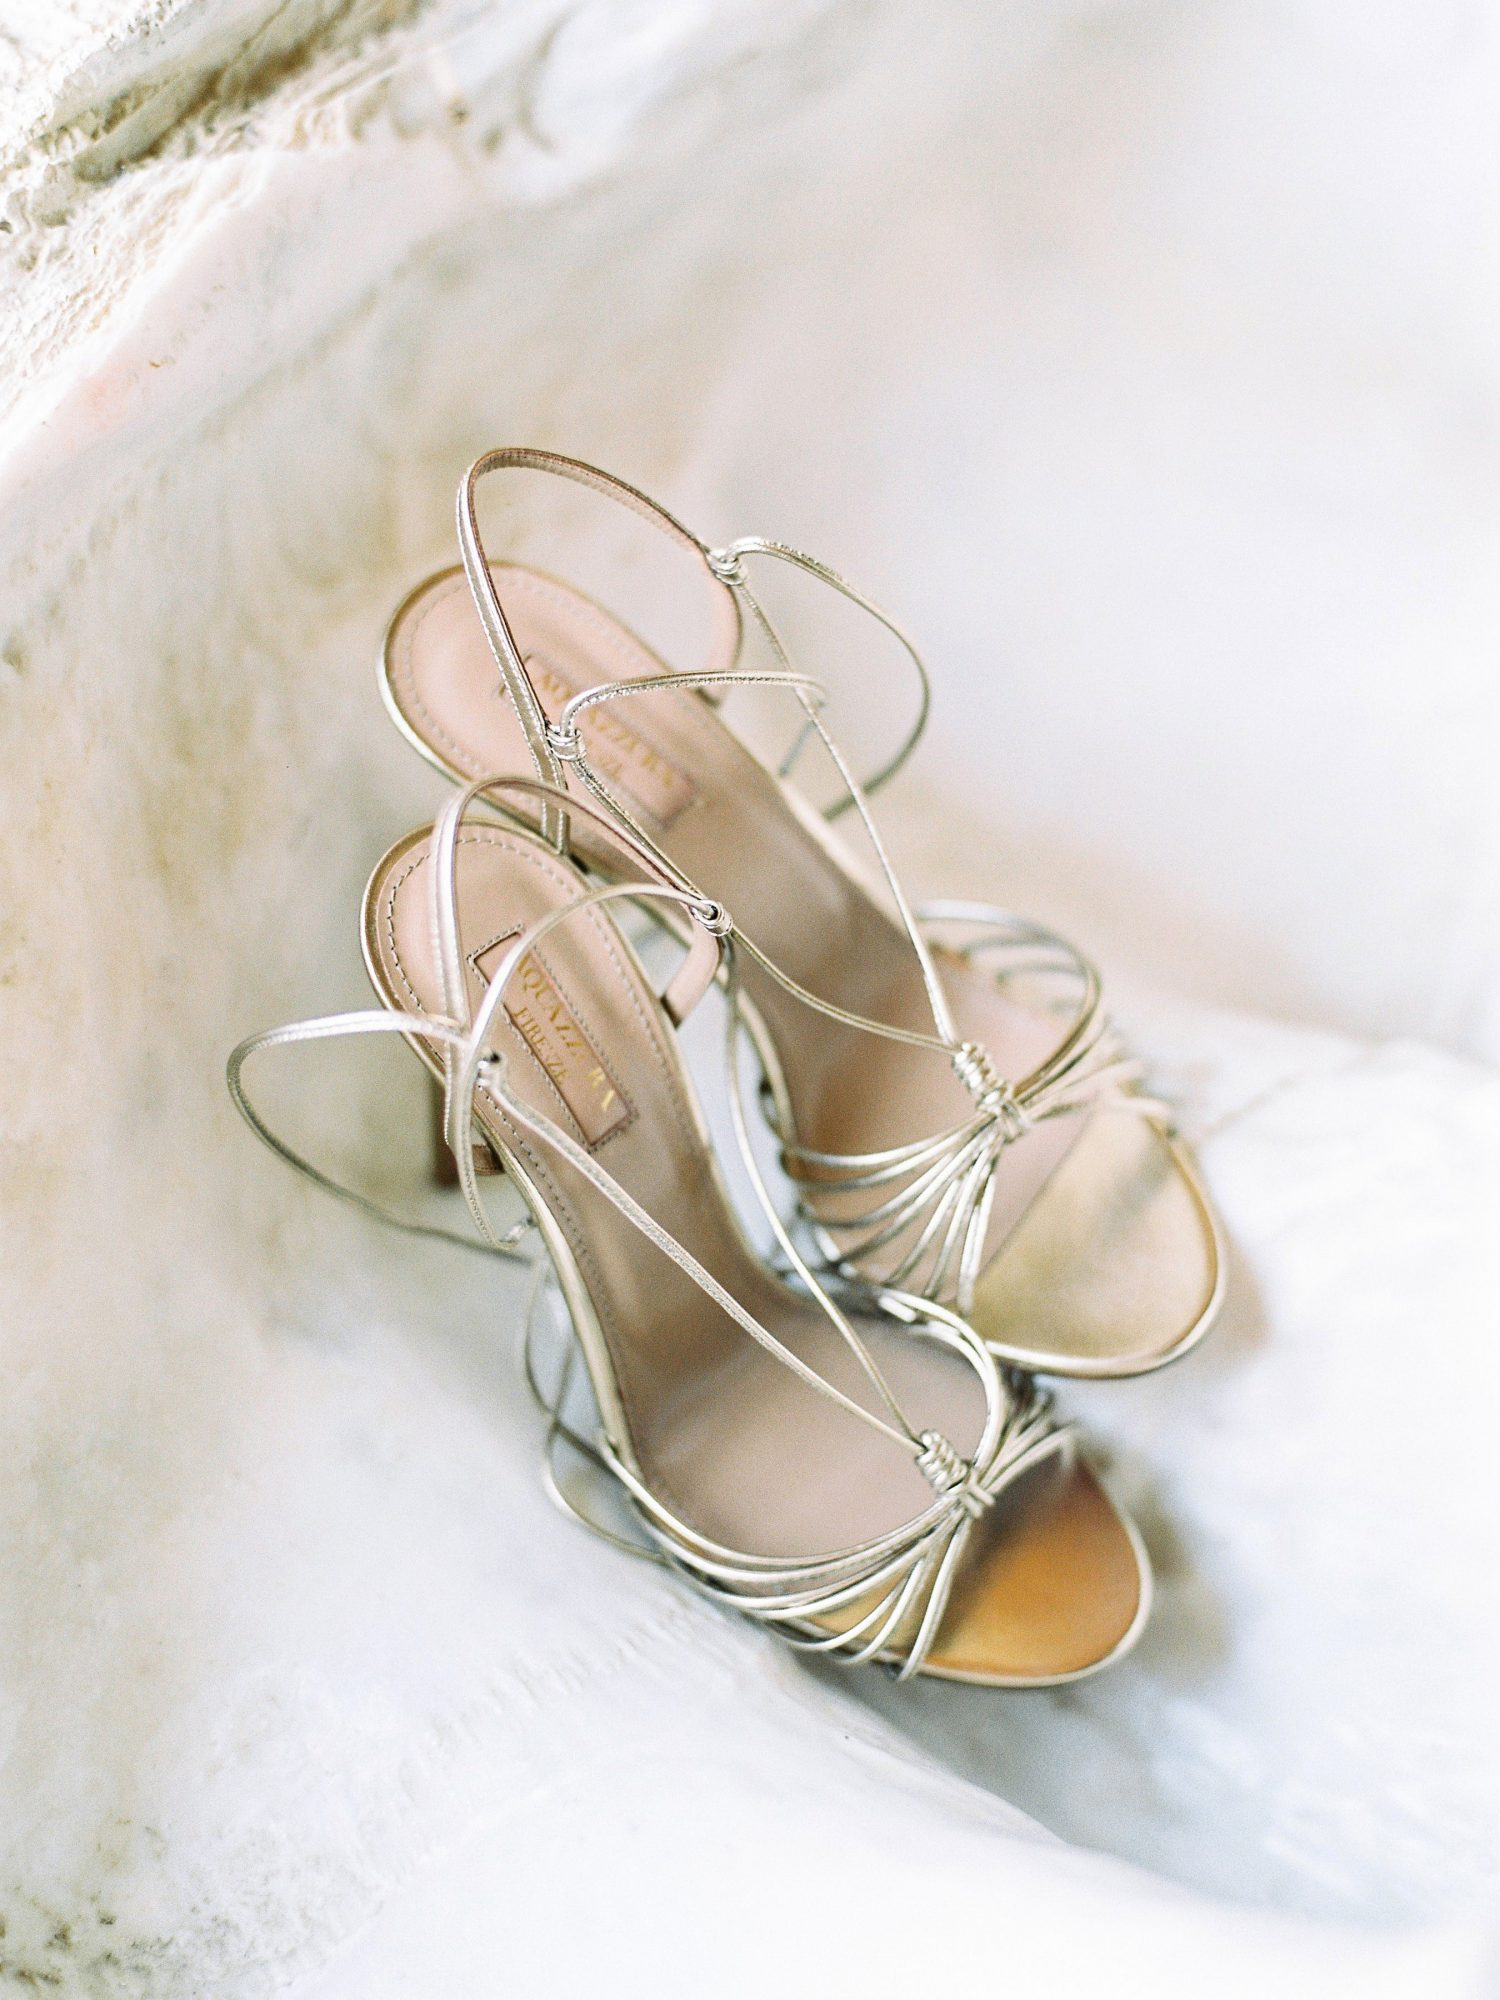 kseniya sadhir wedding italy bride metallic shoes